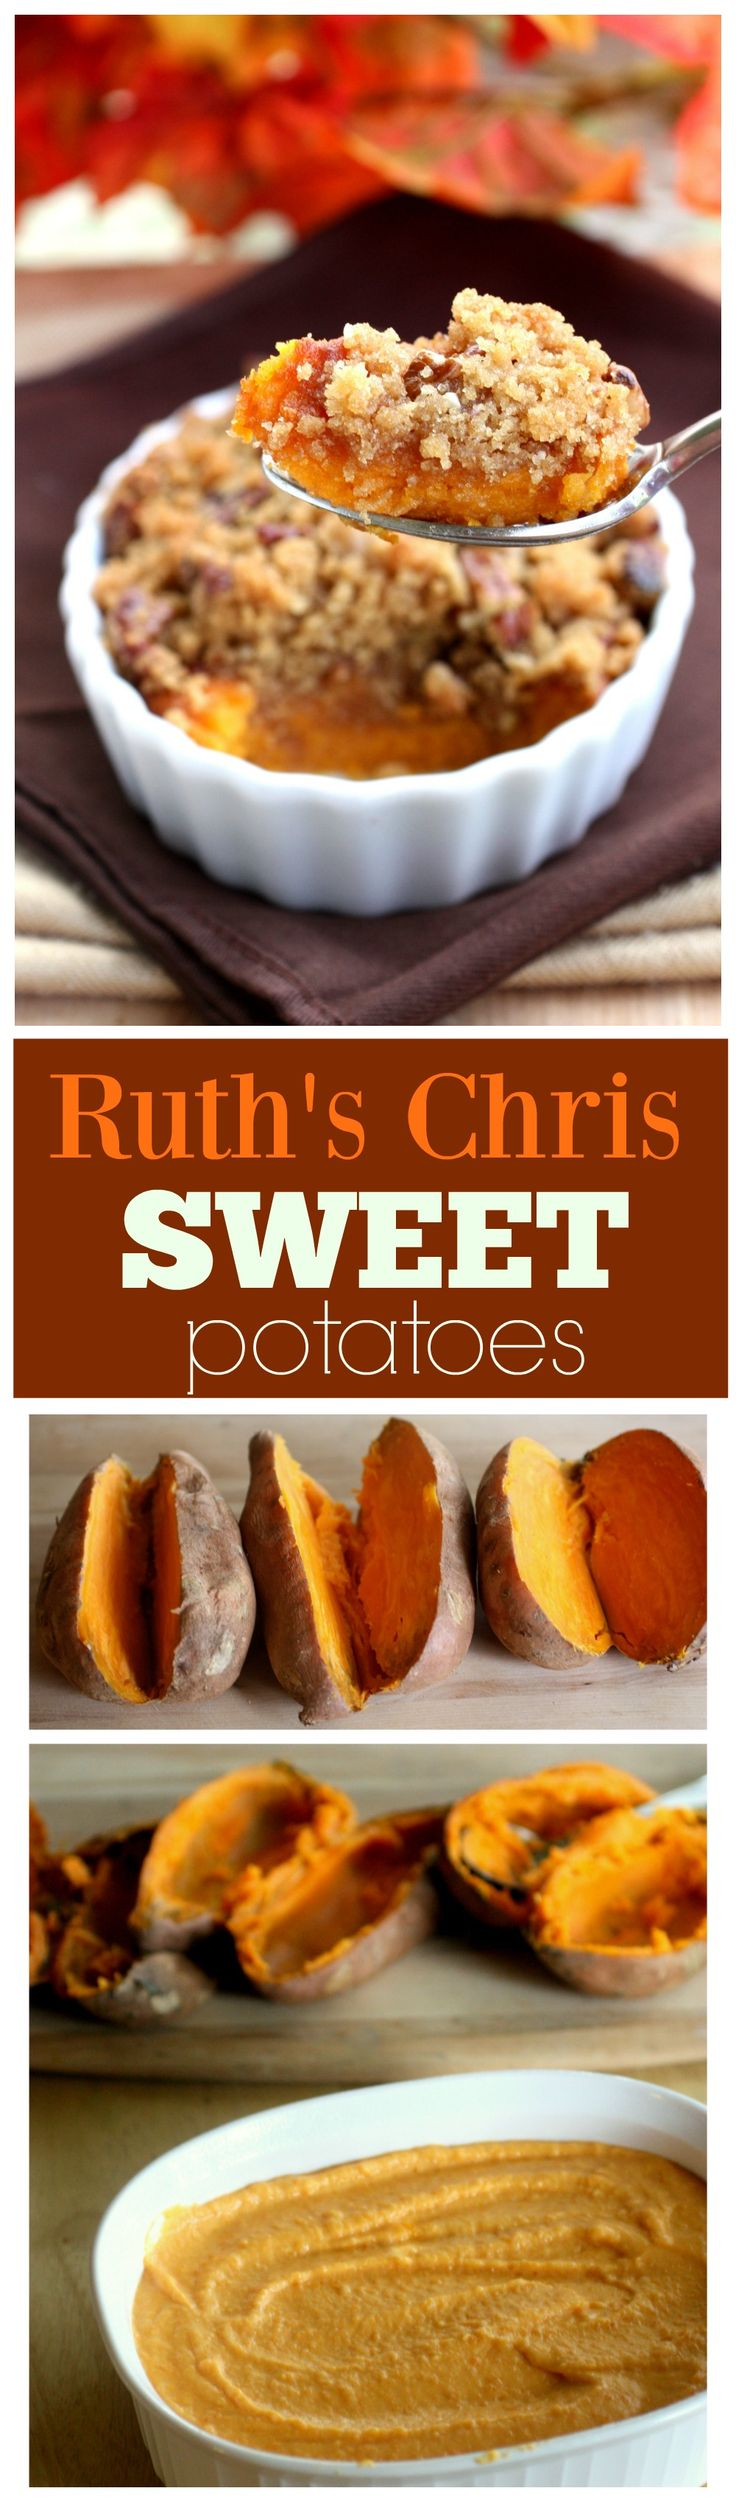 Just boil, bake, or even microwave your sweet potatoes.